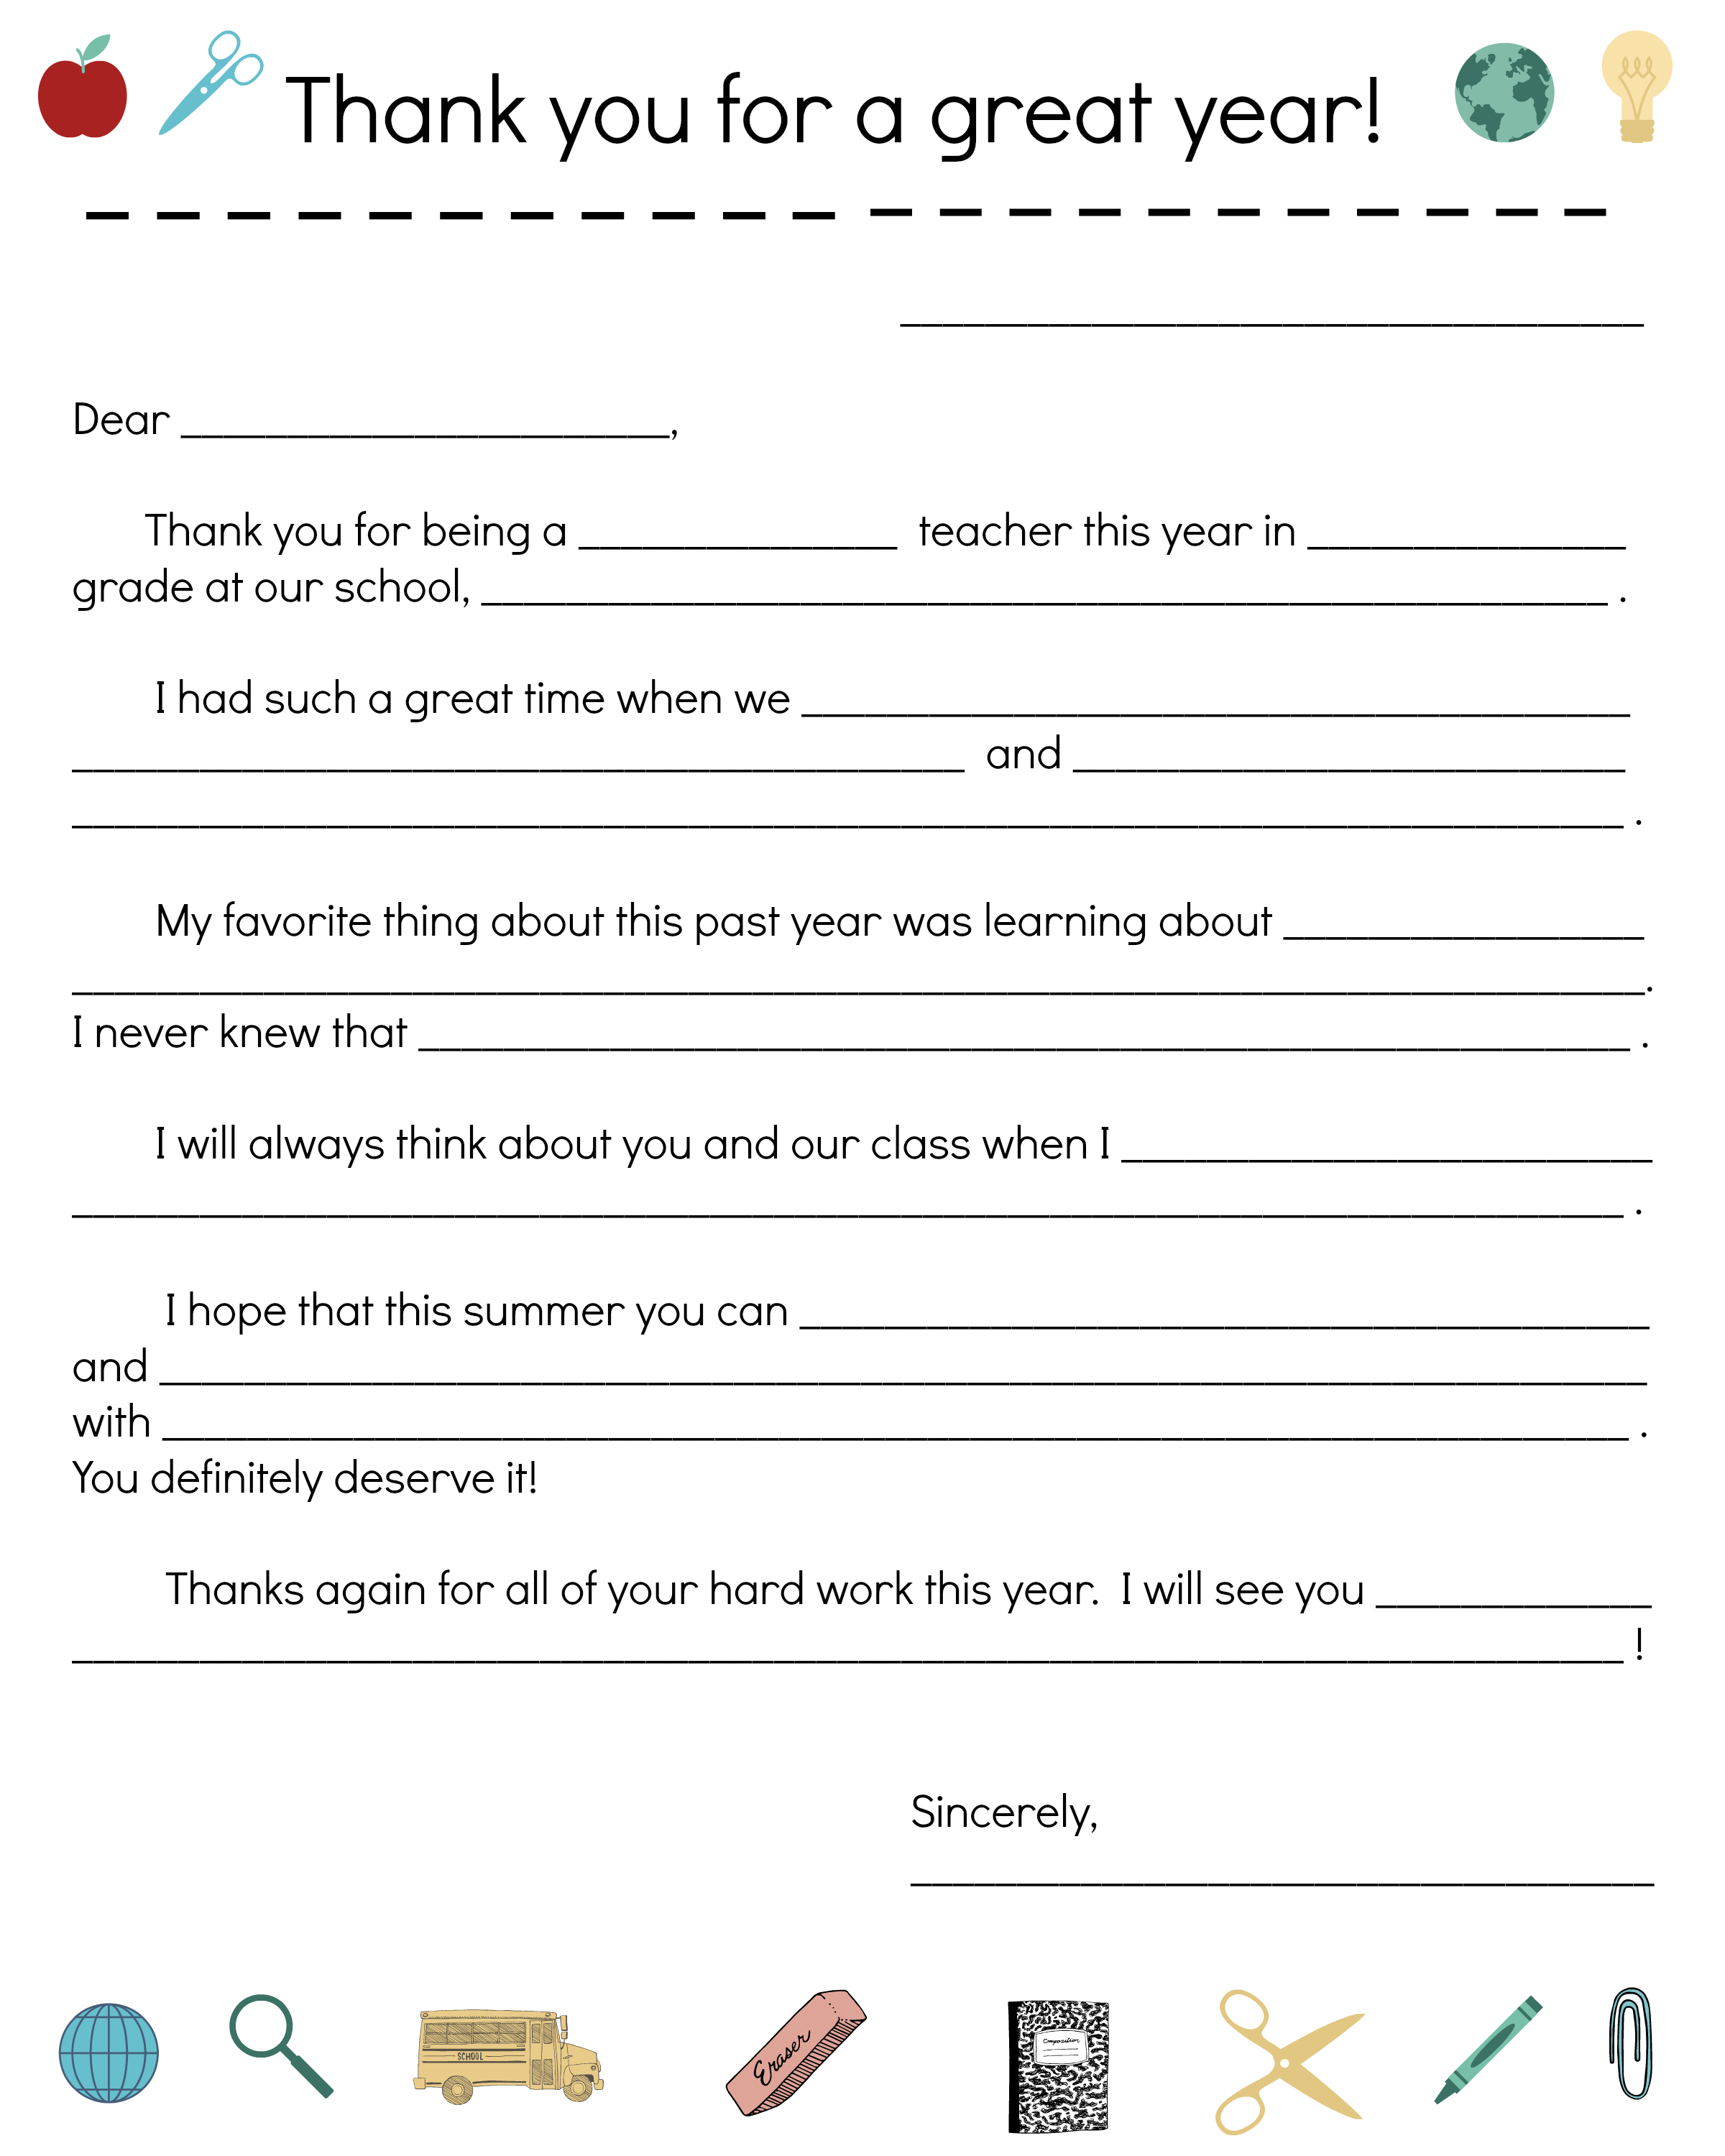 Say Thanks To Teachers With A Fill-In Note From Your Child - Free Printable Teacher Notes To Parents